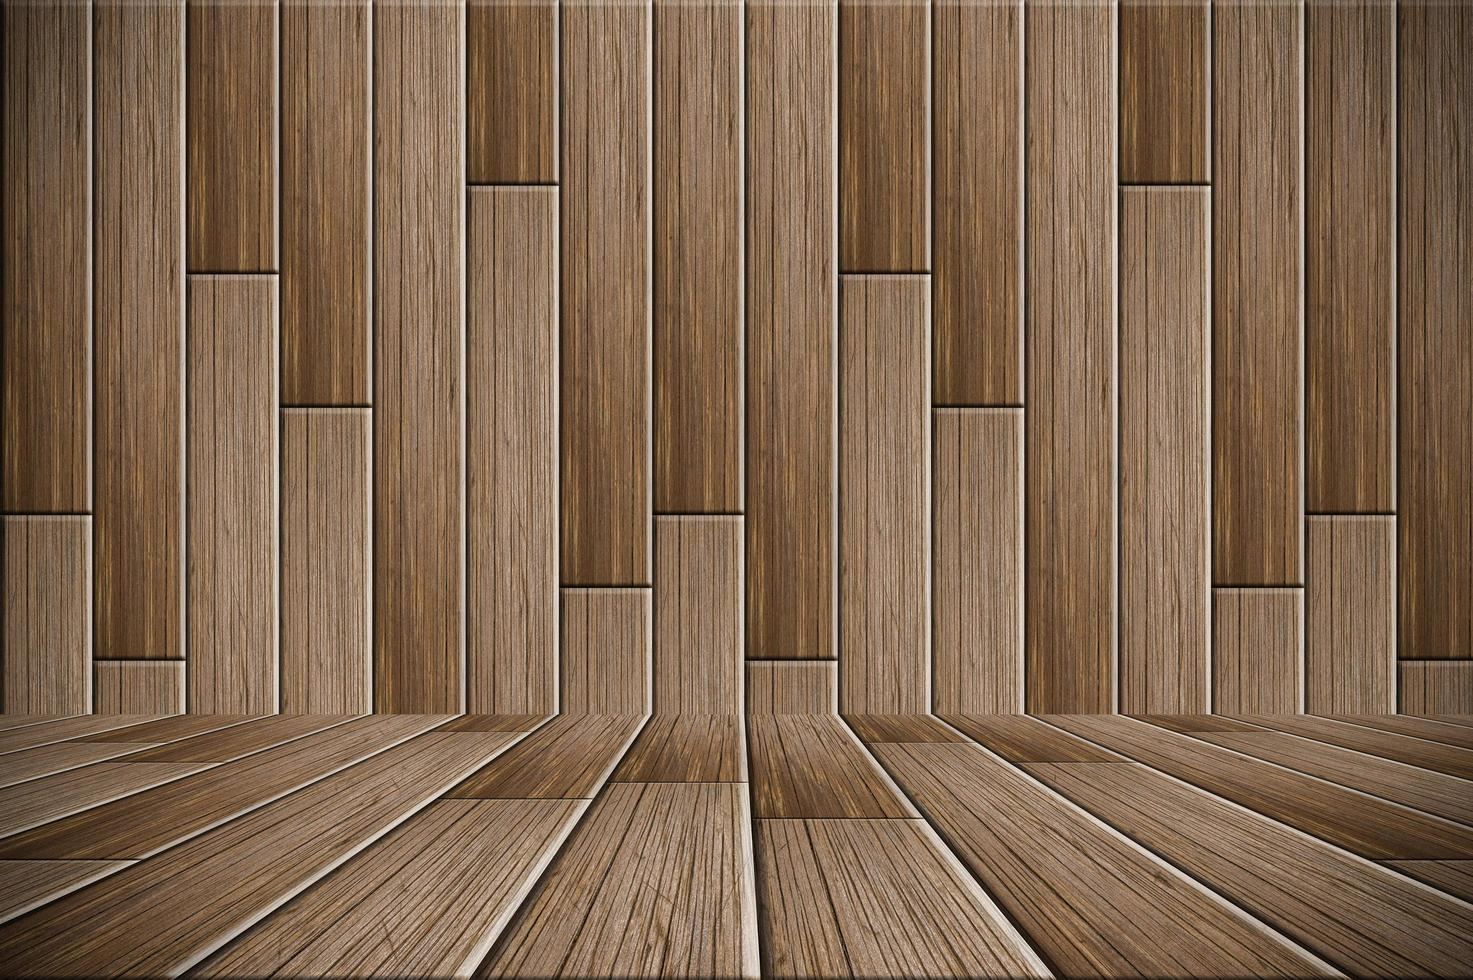 Wooden floor plates photo